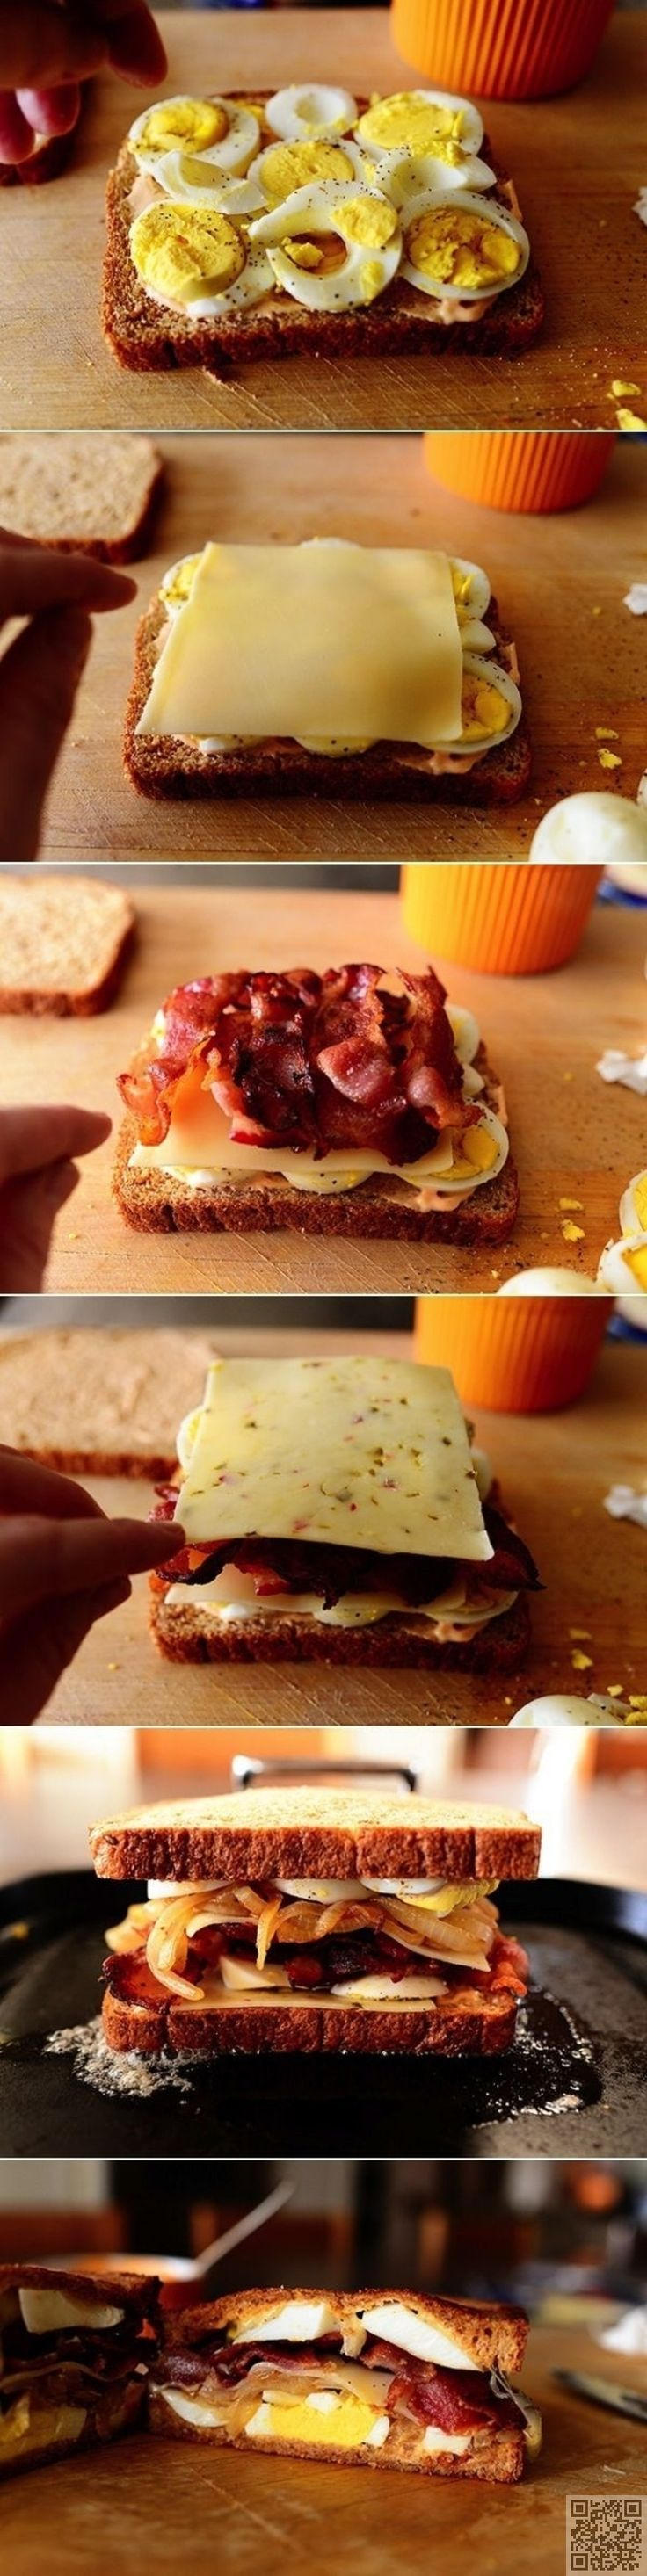 #Ultimate Grilled #Cheese Sandwich   #Eatial #Ham